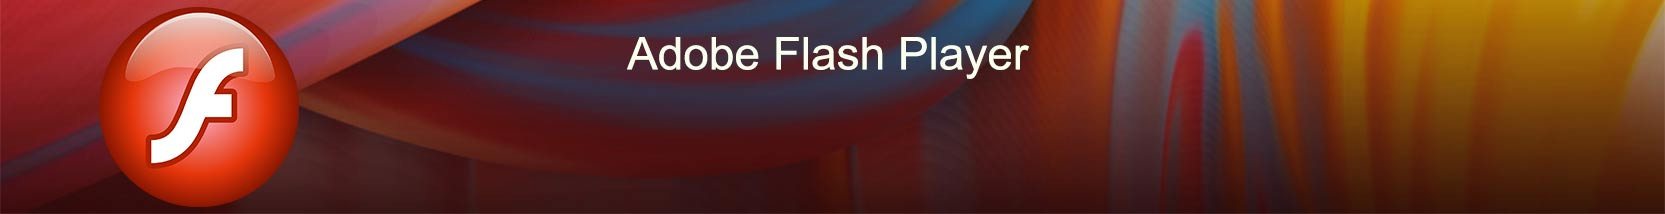 adobe flash player for qmobile q7